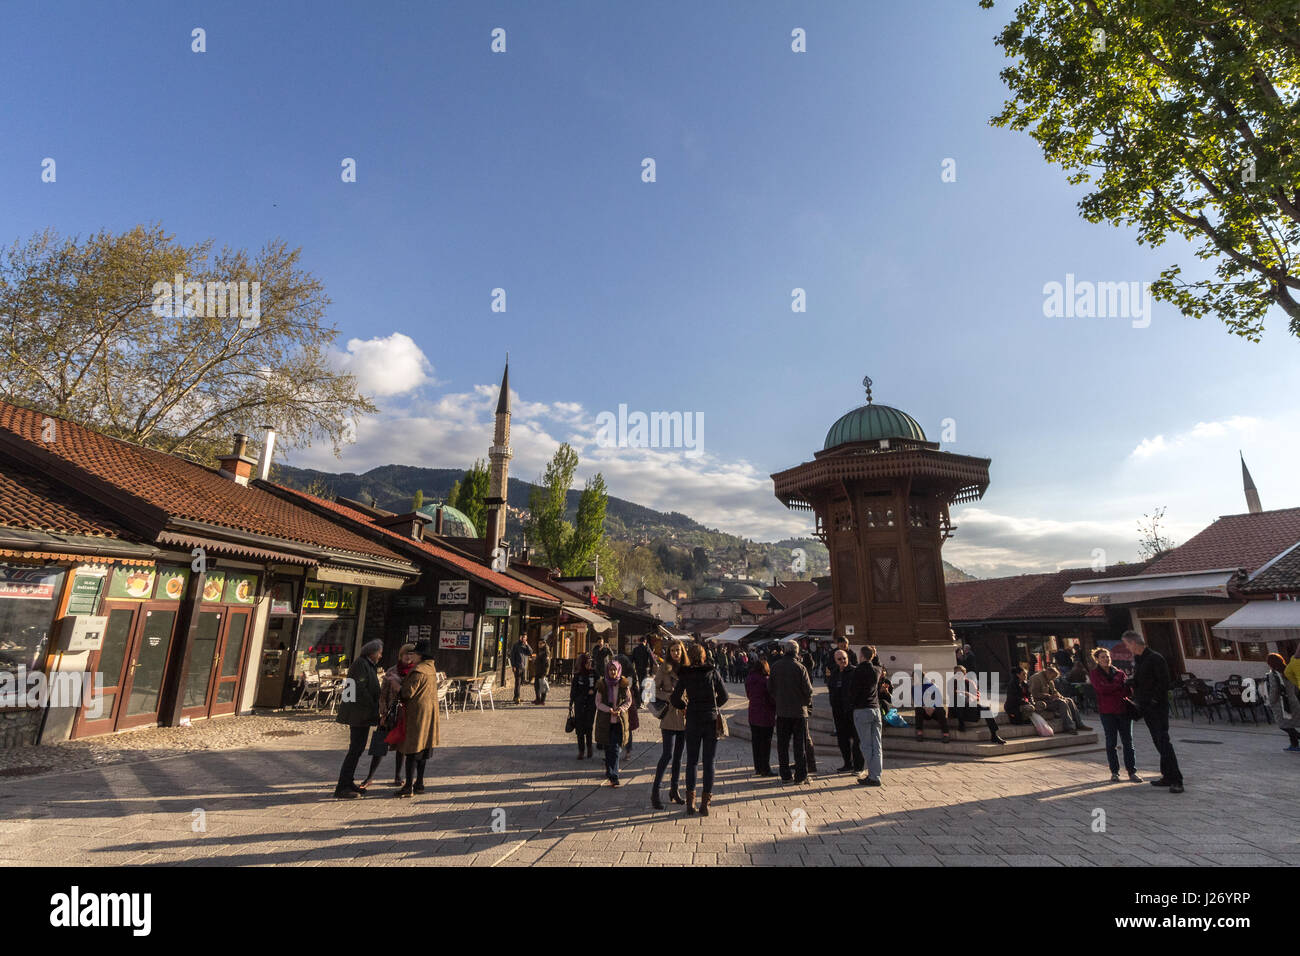 SARAJEVO, BOSNIA HERZEGOVINA - APRIL 17, 2017: Sebilj fountain, on Bacarsija district,  in the afternoon. This fountain - Stock Image